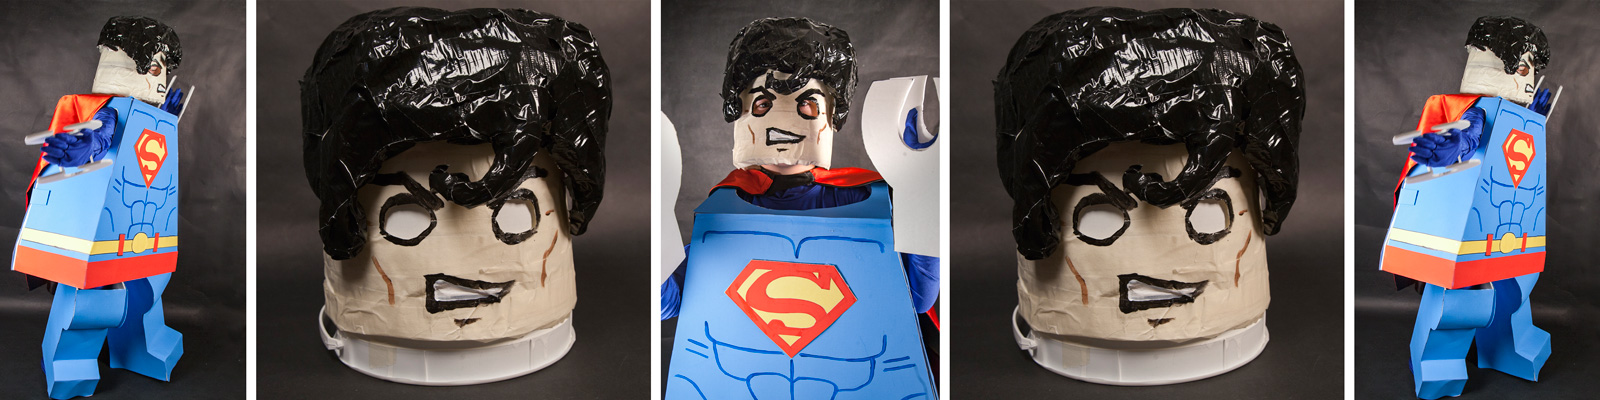 DIY Lego Superman Costume